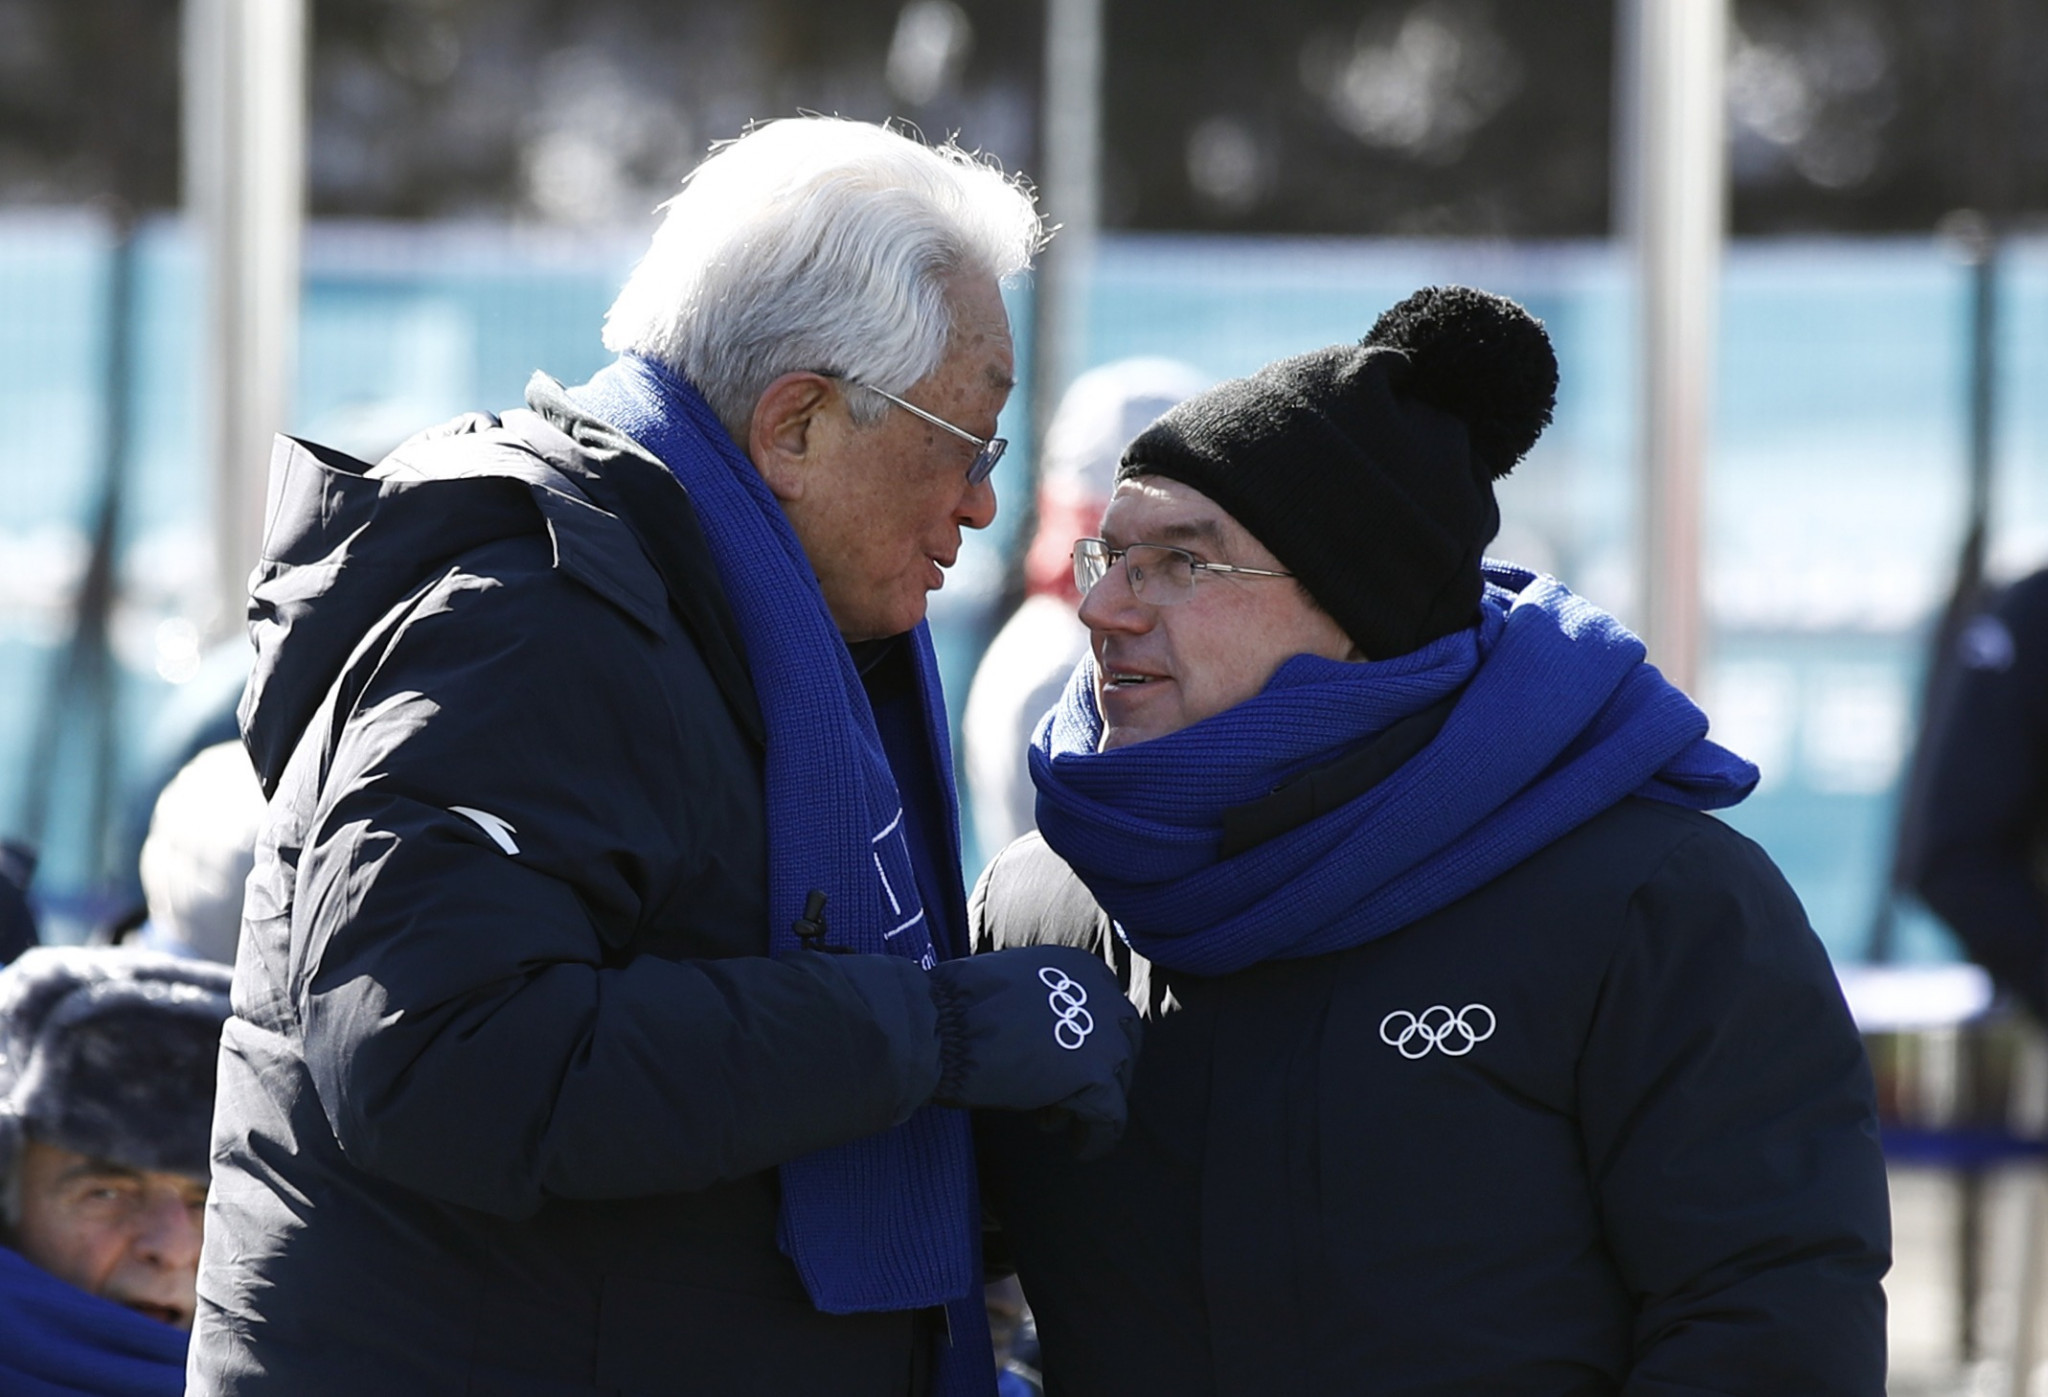 Chang Ung, left, pictured with IOC President Thomas Bach at Pyeongchang 2018 ©Getty Images